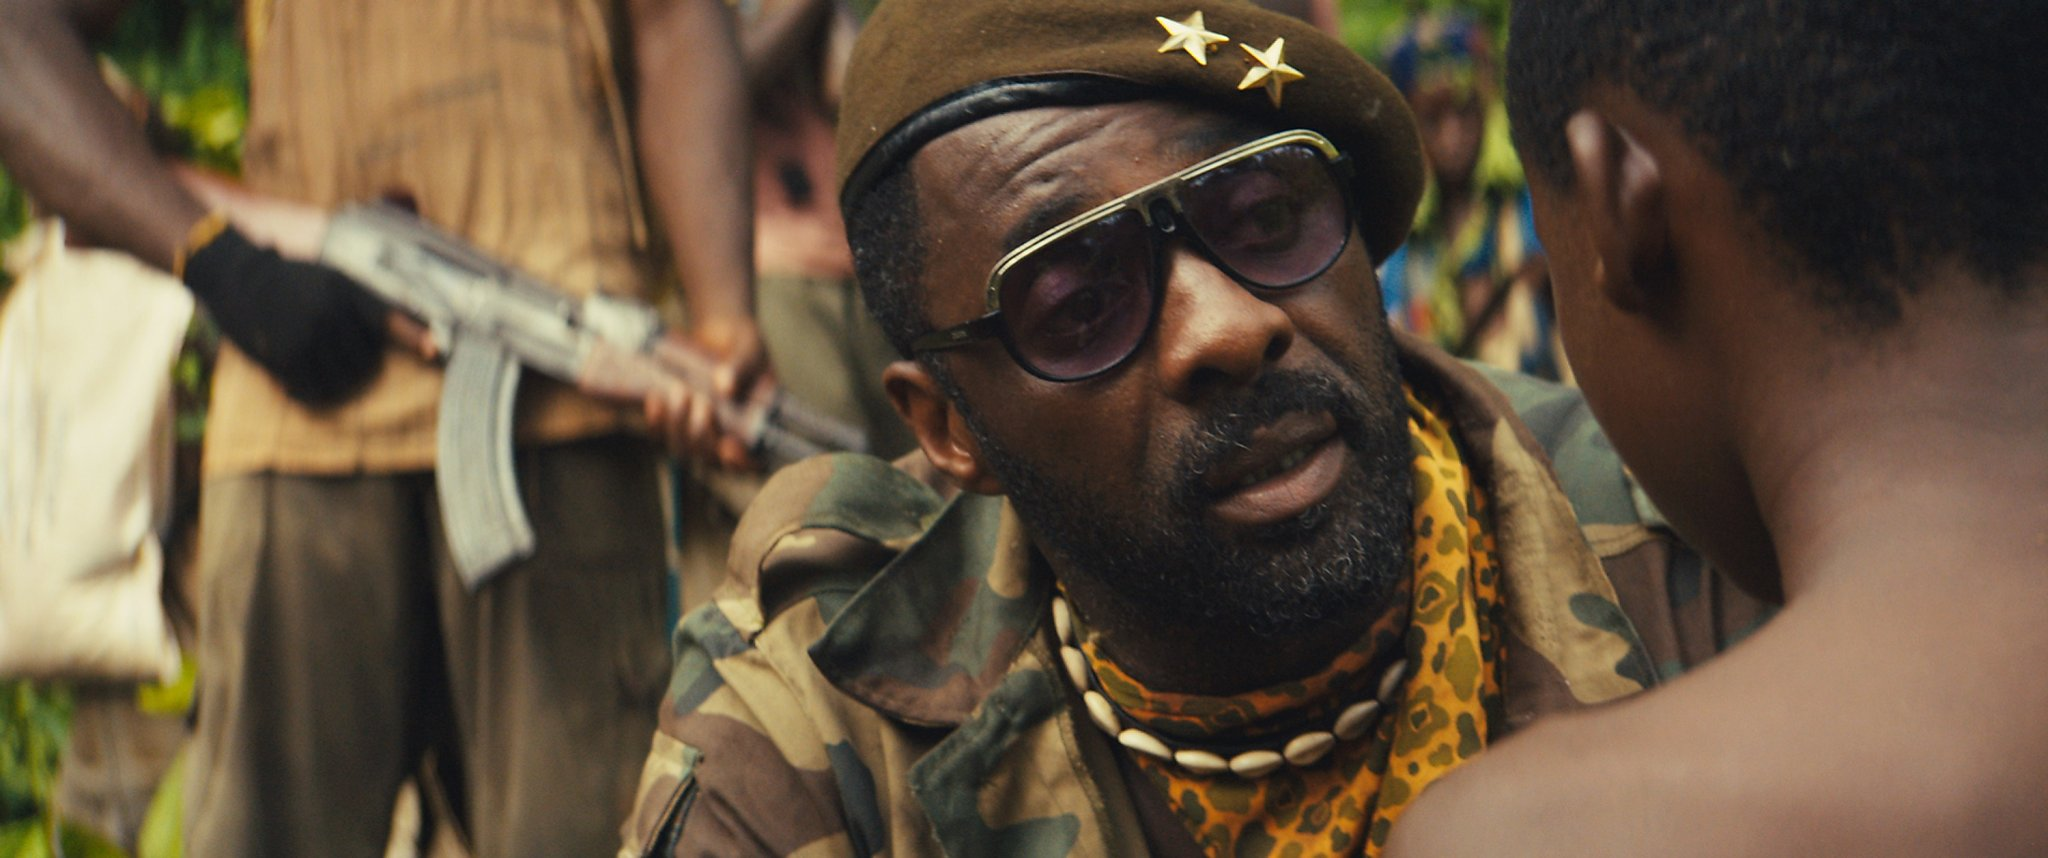 Child as soldier in gripping, disturbing \'Beasts of No Nation\' - SFGate